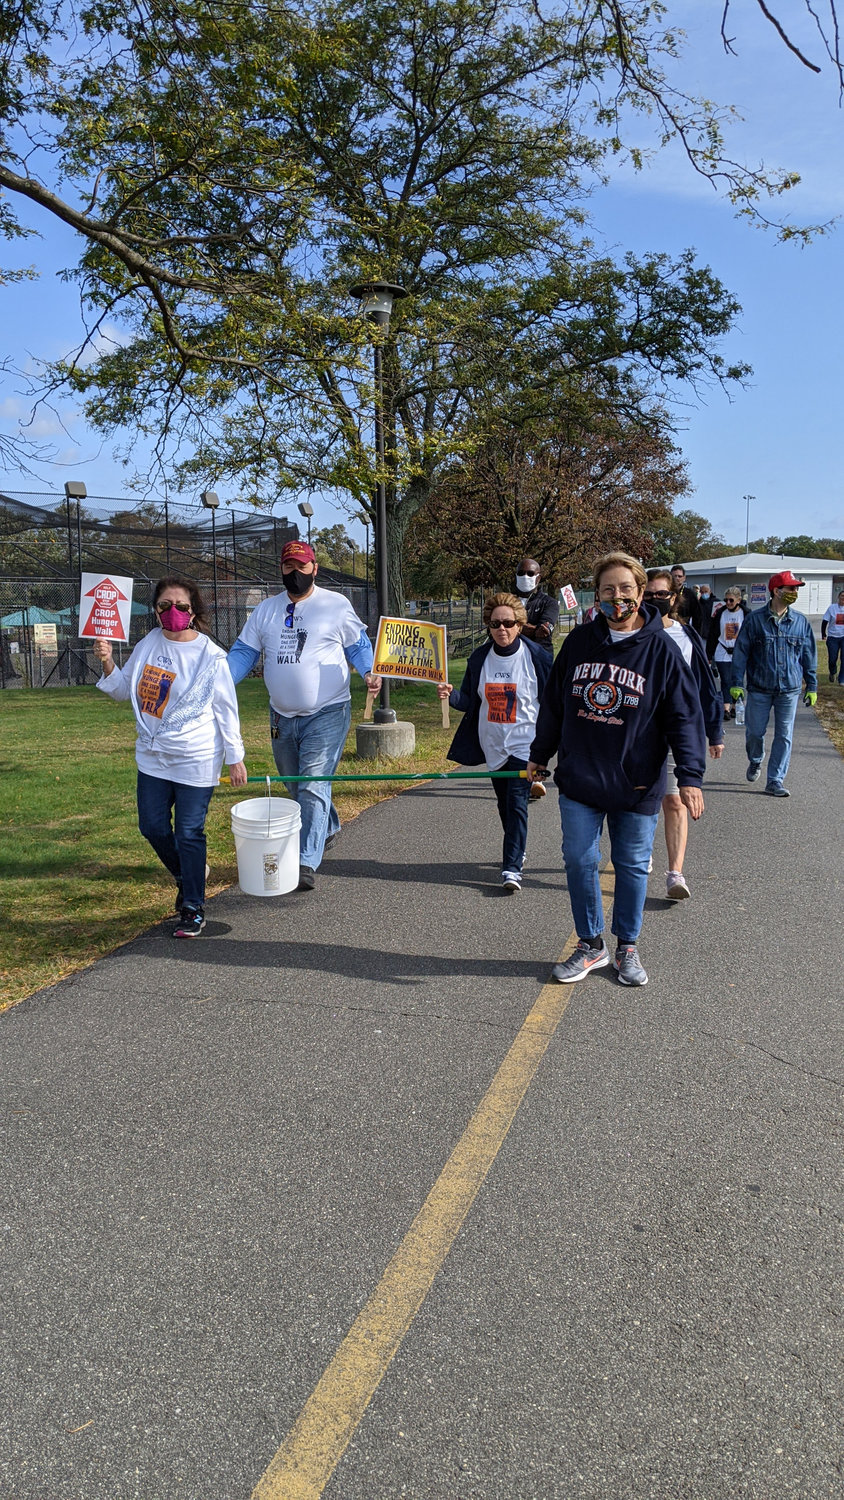 Leaders of the pack: Members of Holy Trinity Orthodox Church in East Meadow in Eisenhower Park last Saturday to raise money for hunger issues at home and overseas.